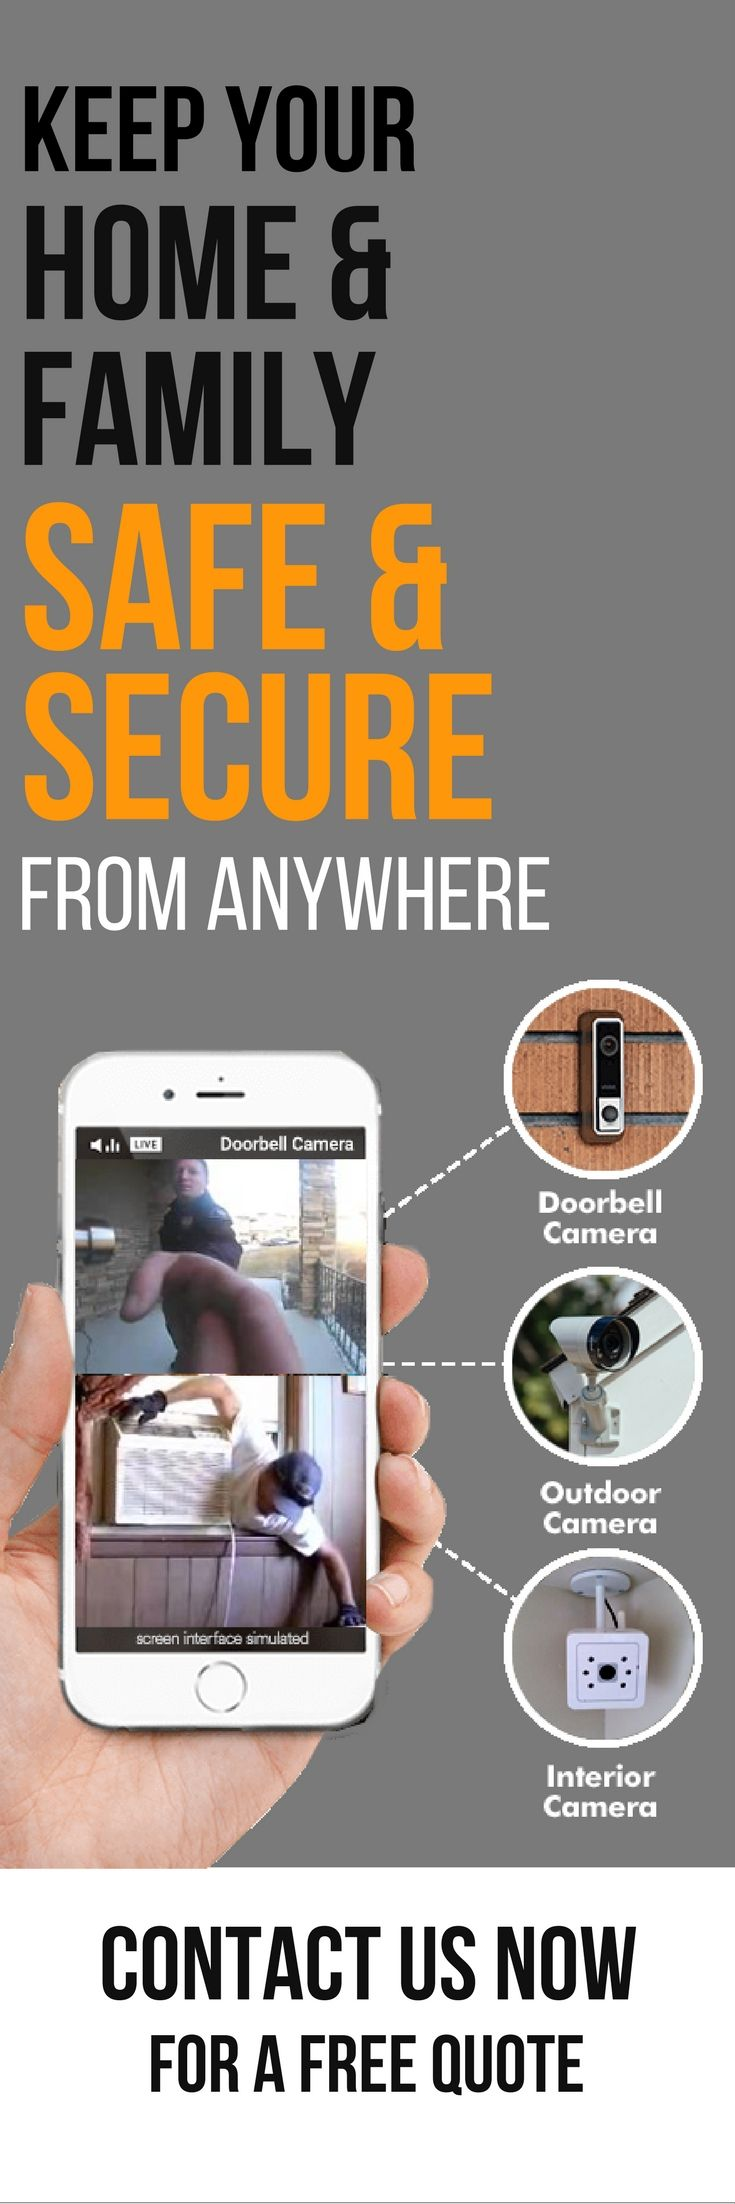 Smart Home Security Automation System - Keep your Home and Family SAFE and SECURE from anywhere!